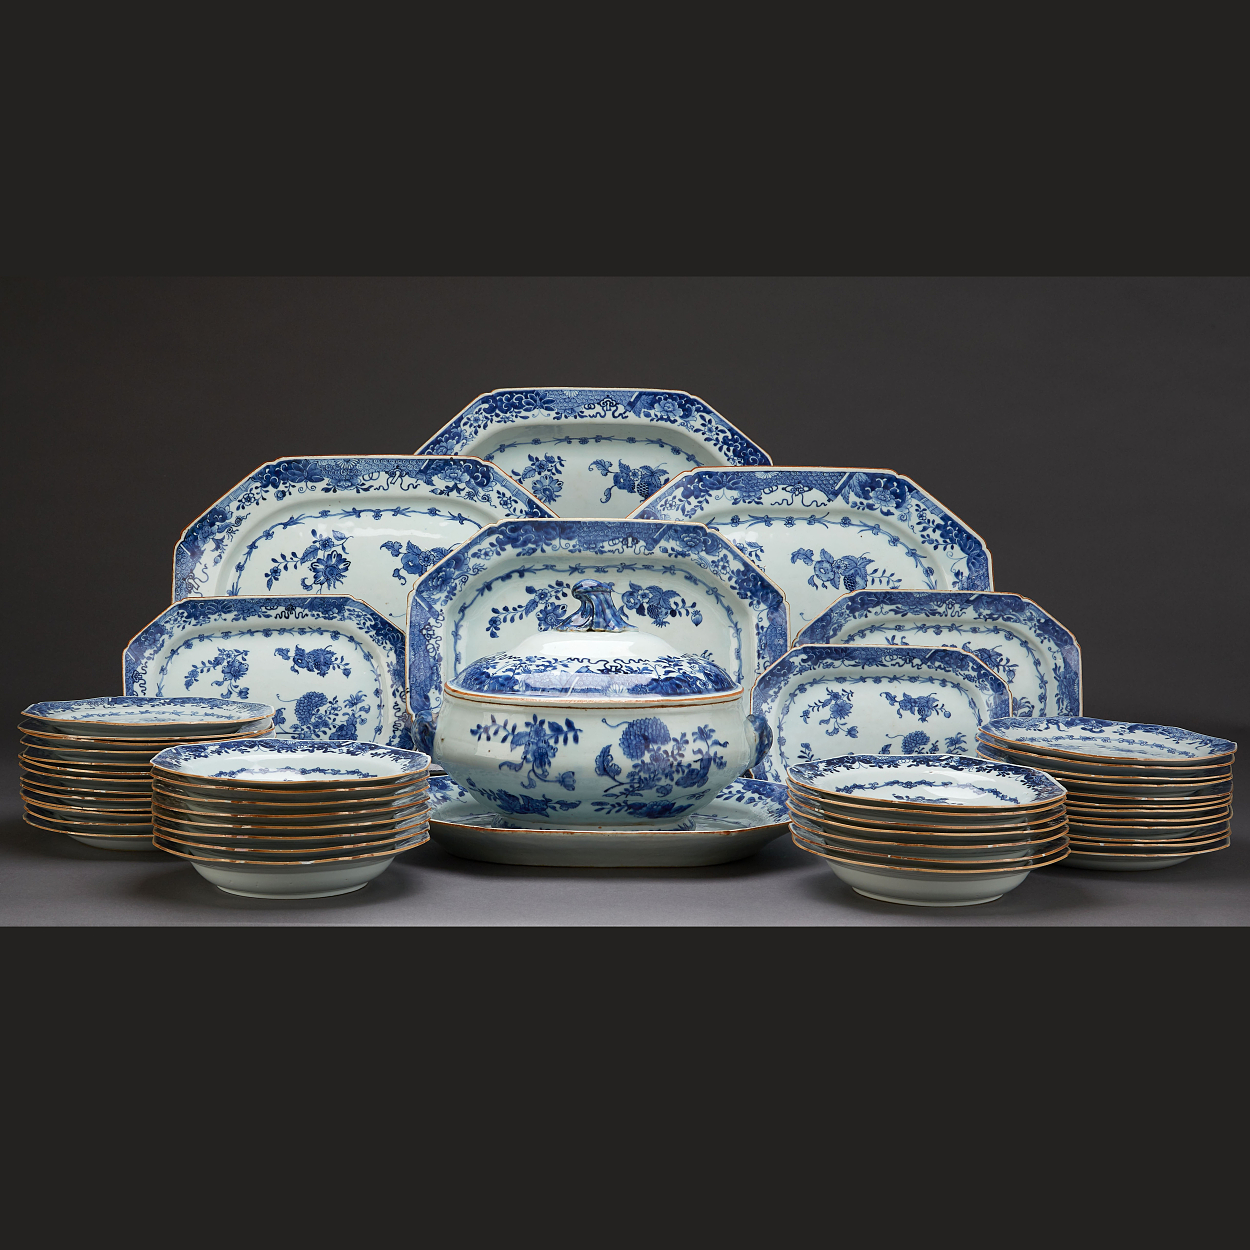 A 48 Piece Blue and White Dinner Service